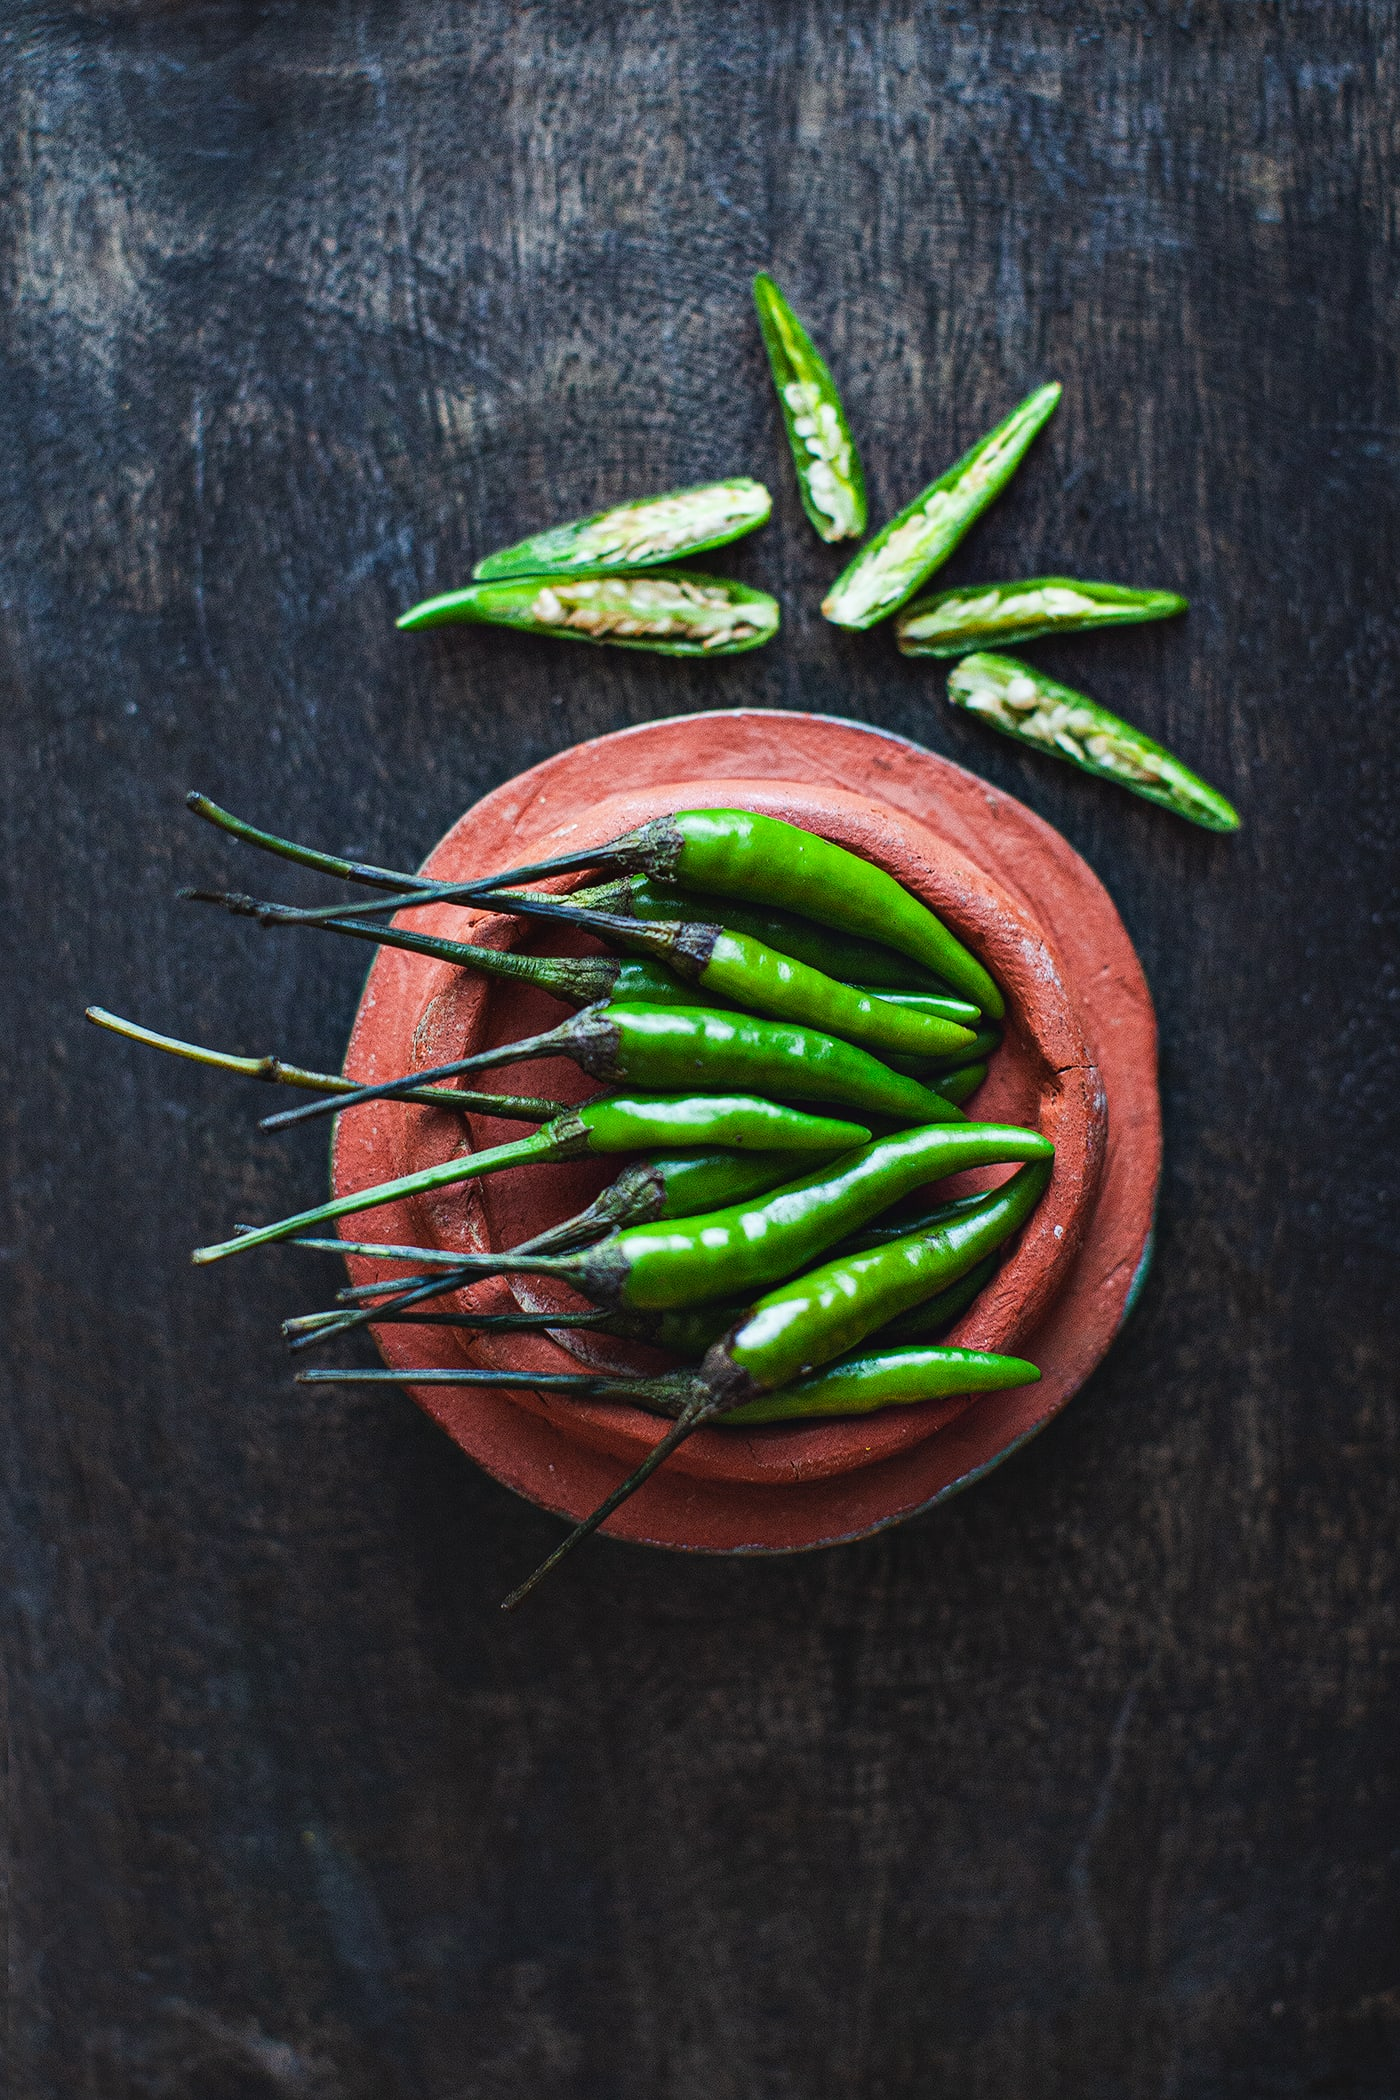 Fresh Thai green bird's eye chilis are used extensively in Thai cuisine to help add the spicy flavors to food. #greenchilis #birdseyechilis #thaipeppers #thaigreenpeppers